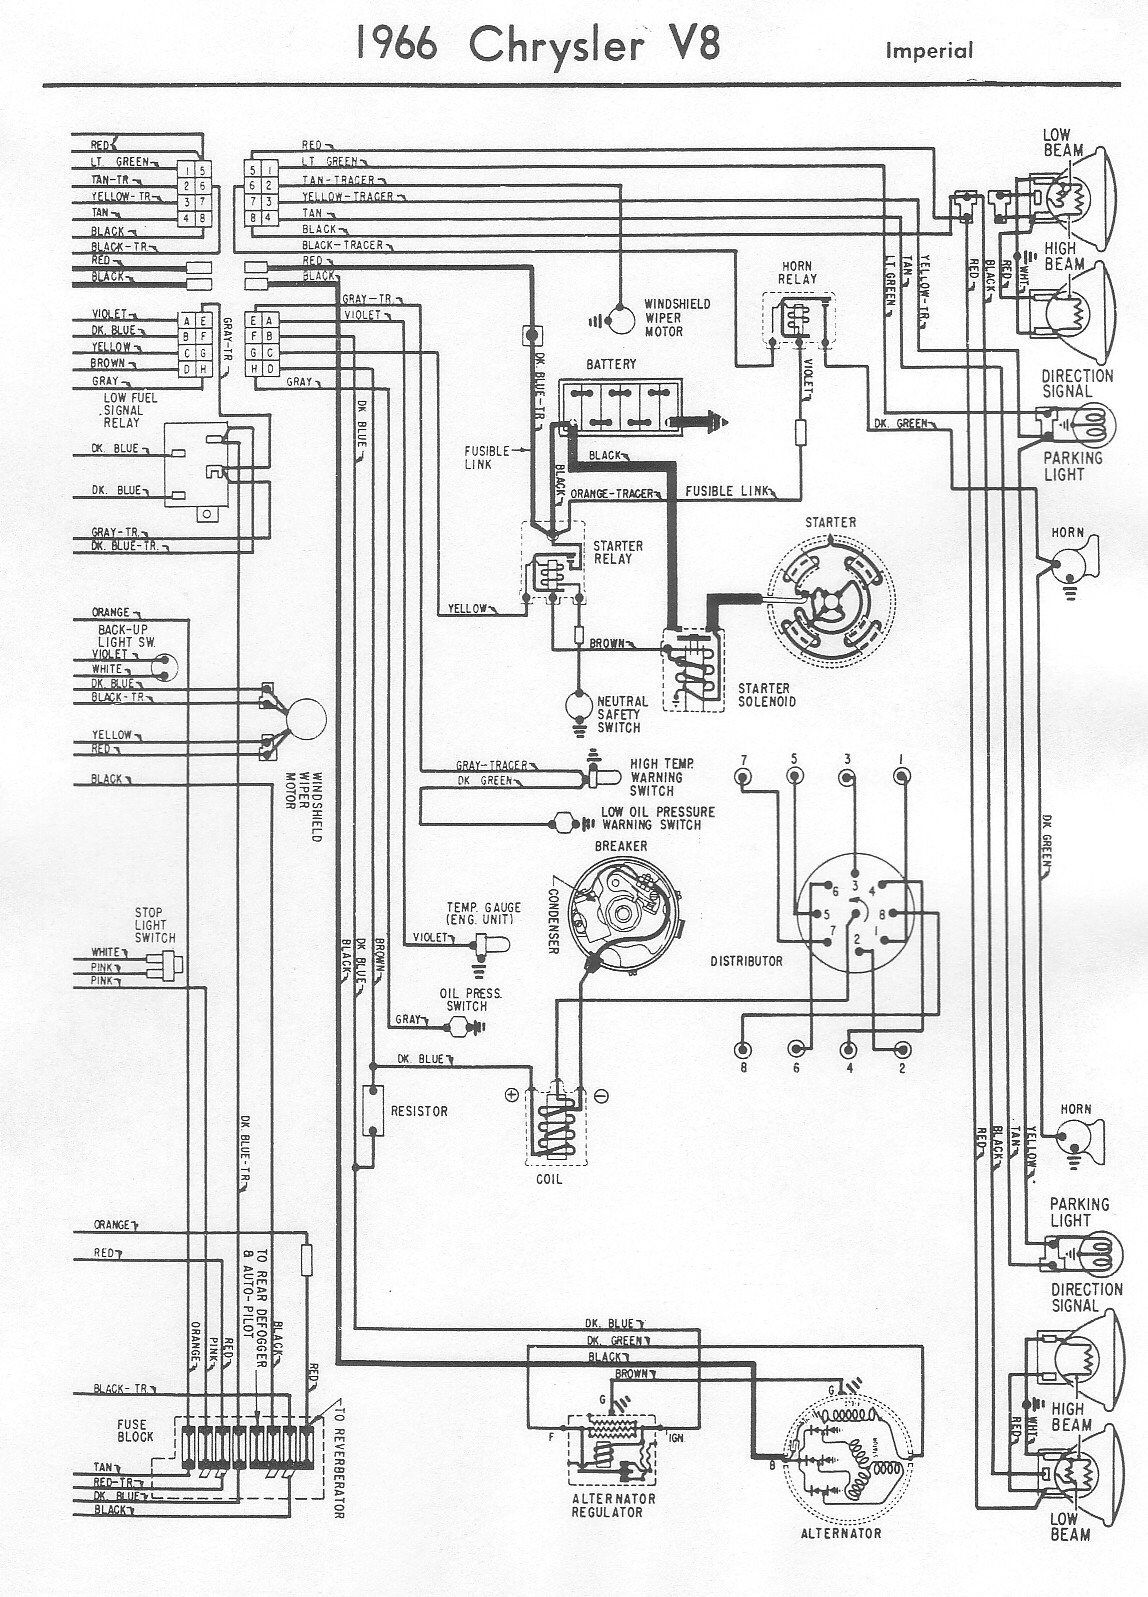 Blue Bird Wiring Schematics Air Condition Automotive Diagram Transit Bus Engine Bluebird Schematic Trusted Rh 29 Nl Schoenheitsbrieftaube De 2002